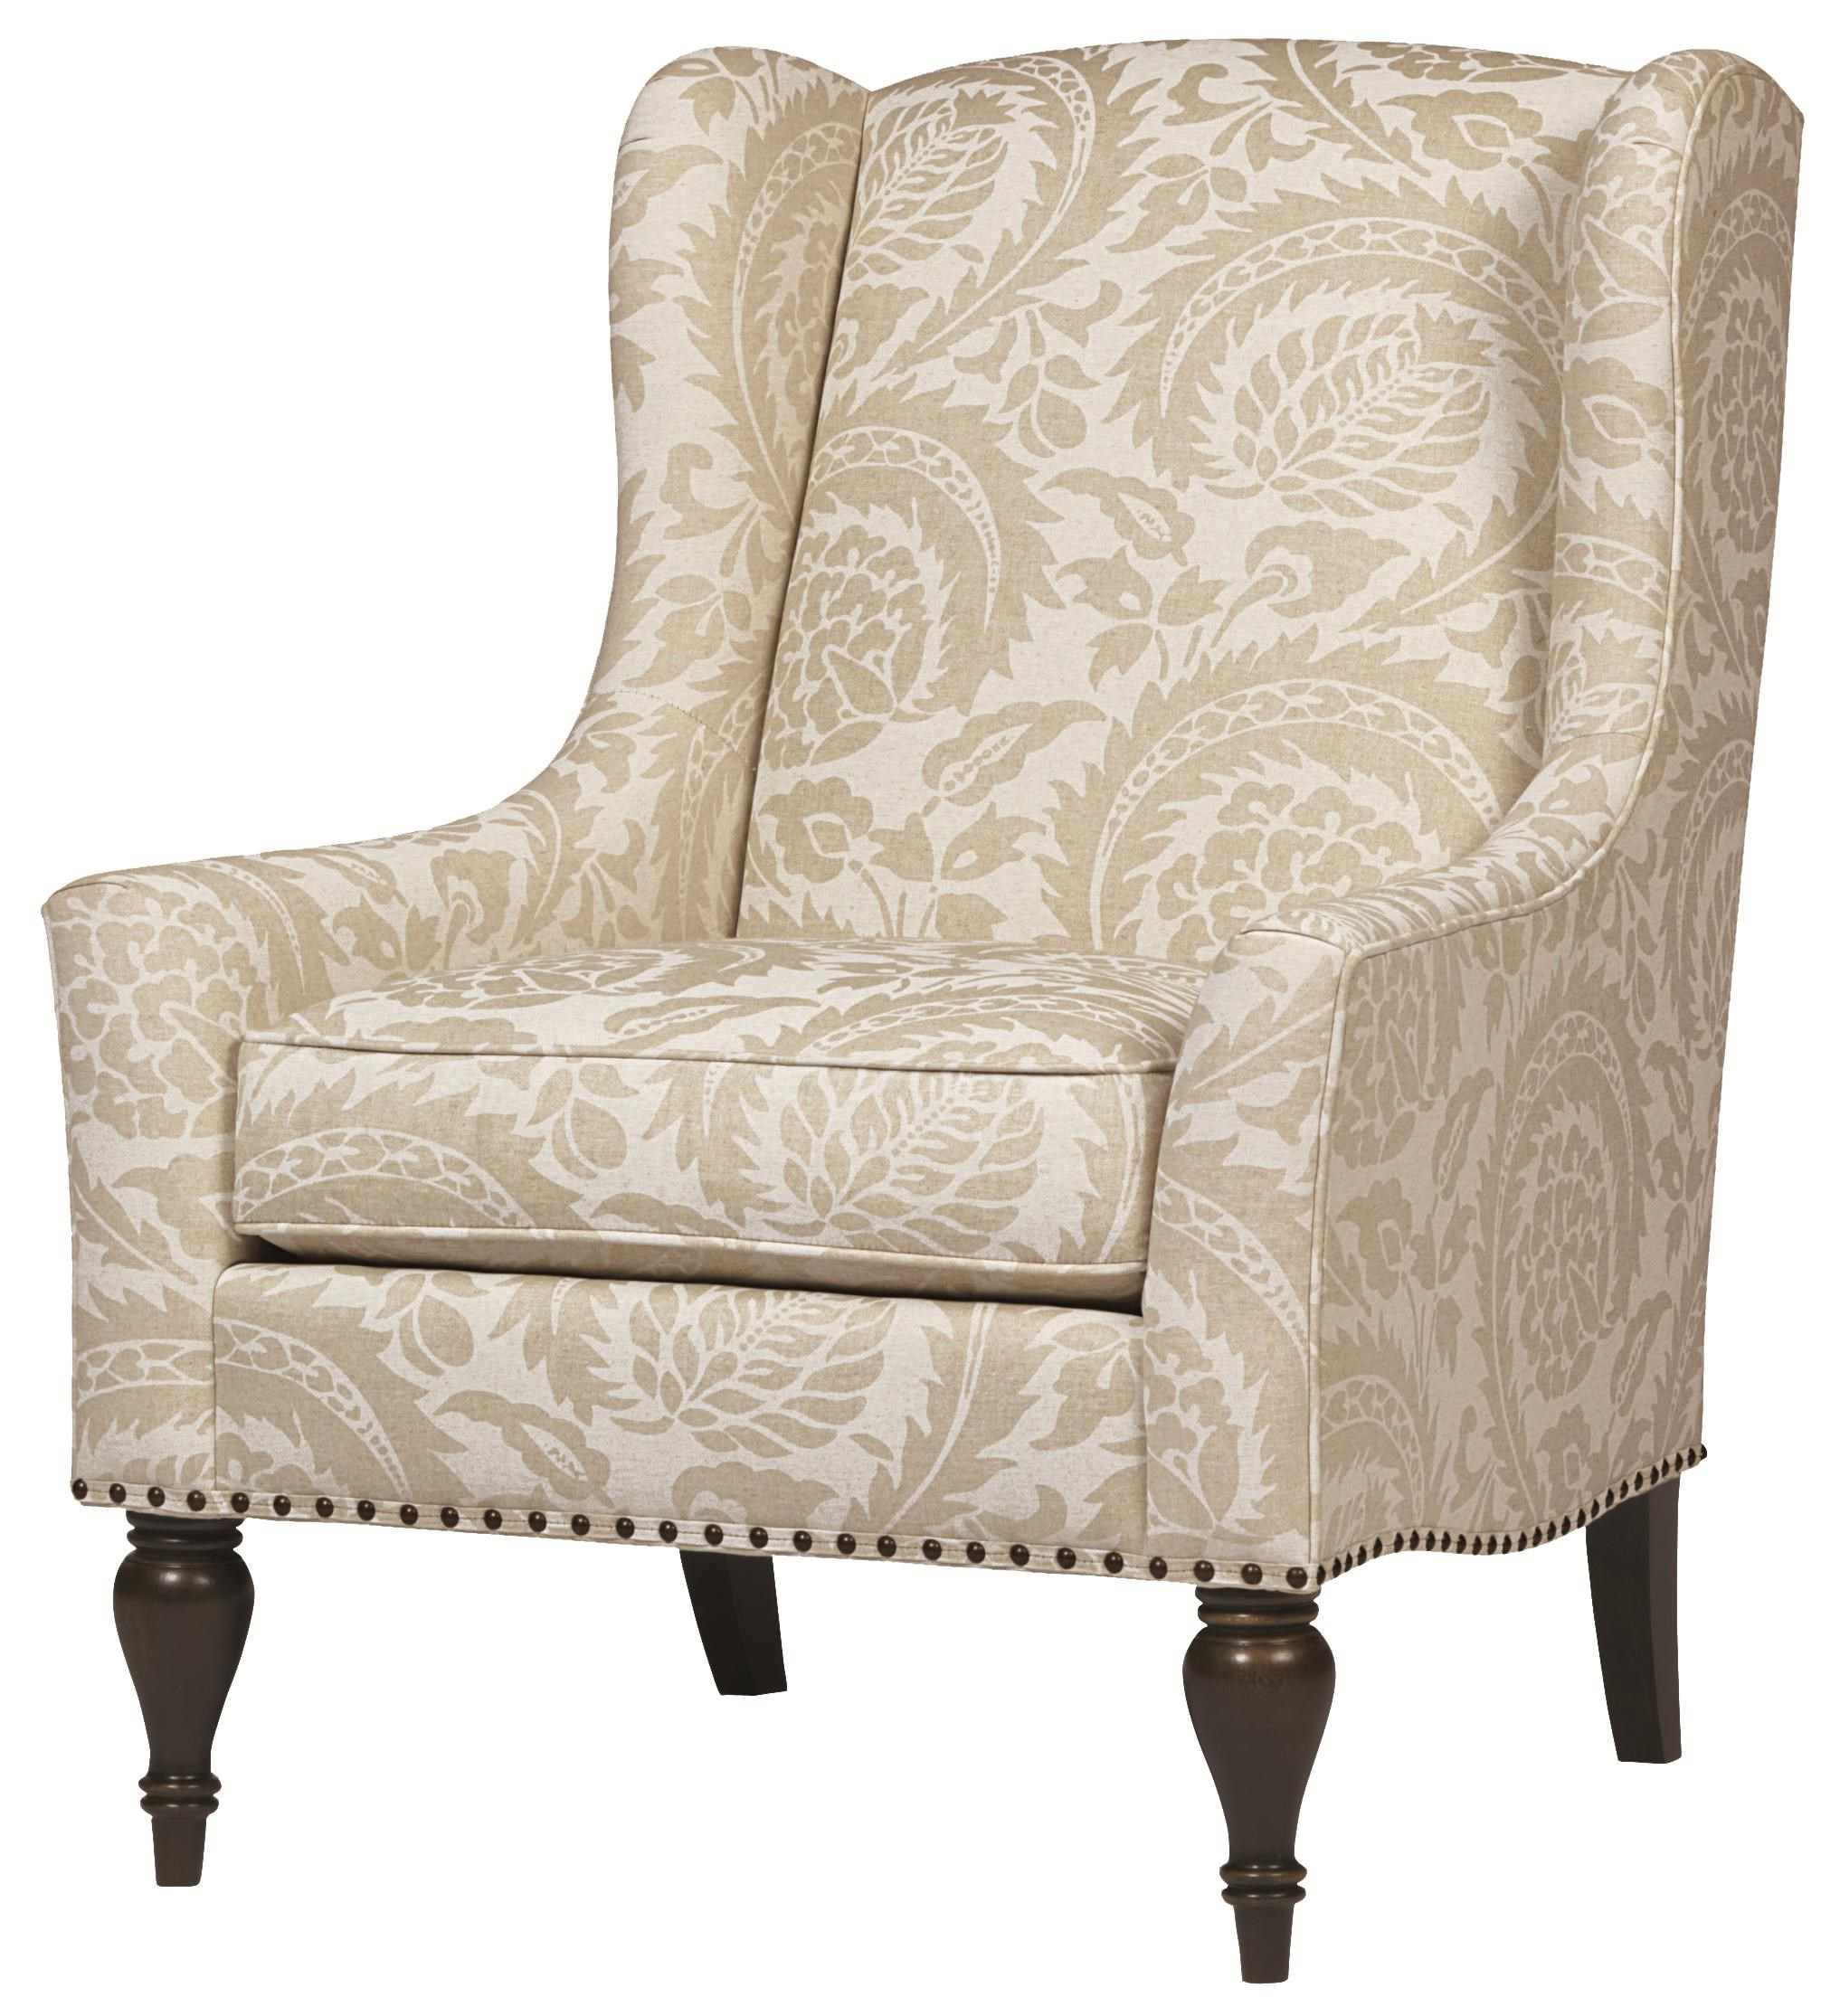 Bernhardt Upholstered Accents Sofia Wing Chair With Nail Head Accent Trim